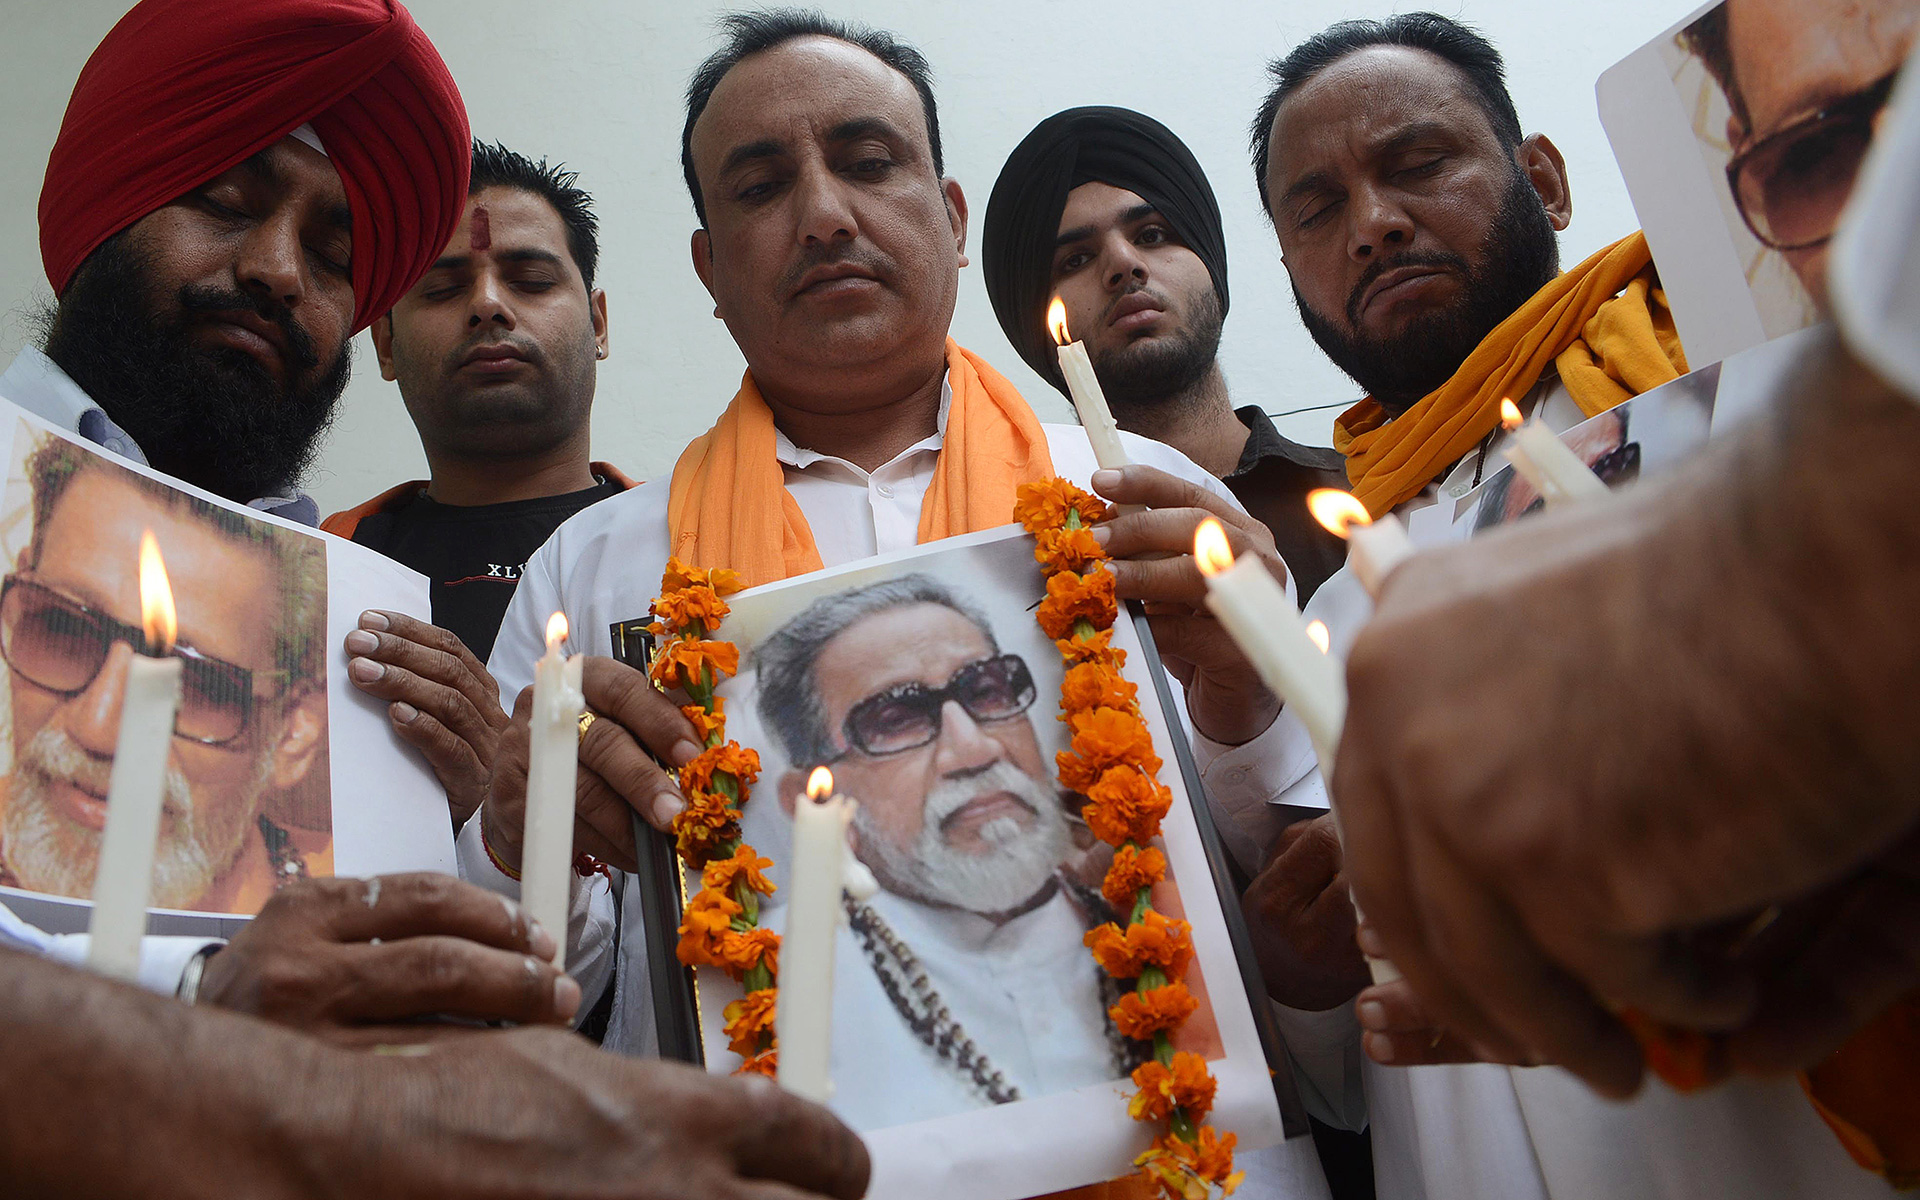 Members of the Indian Hindu nationalist Shiv Sena party light candles as they pay tribute to chief of the Hindu nationalist Shiv Sena party, Bal Thackeray in Amritsar on November 18, 2012.